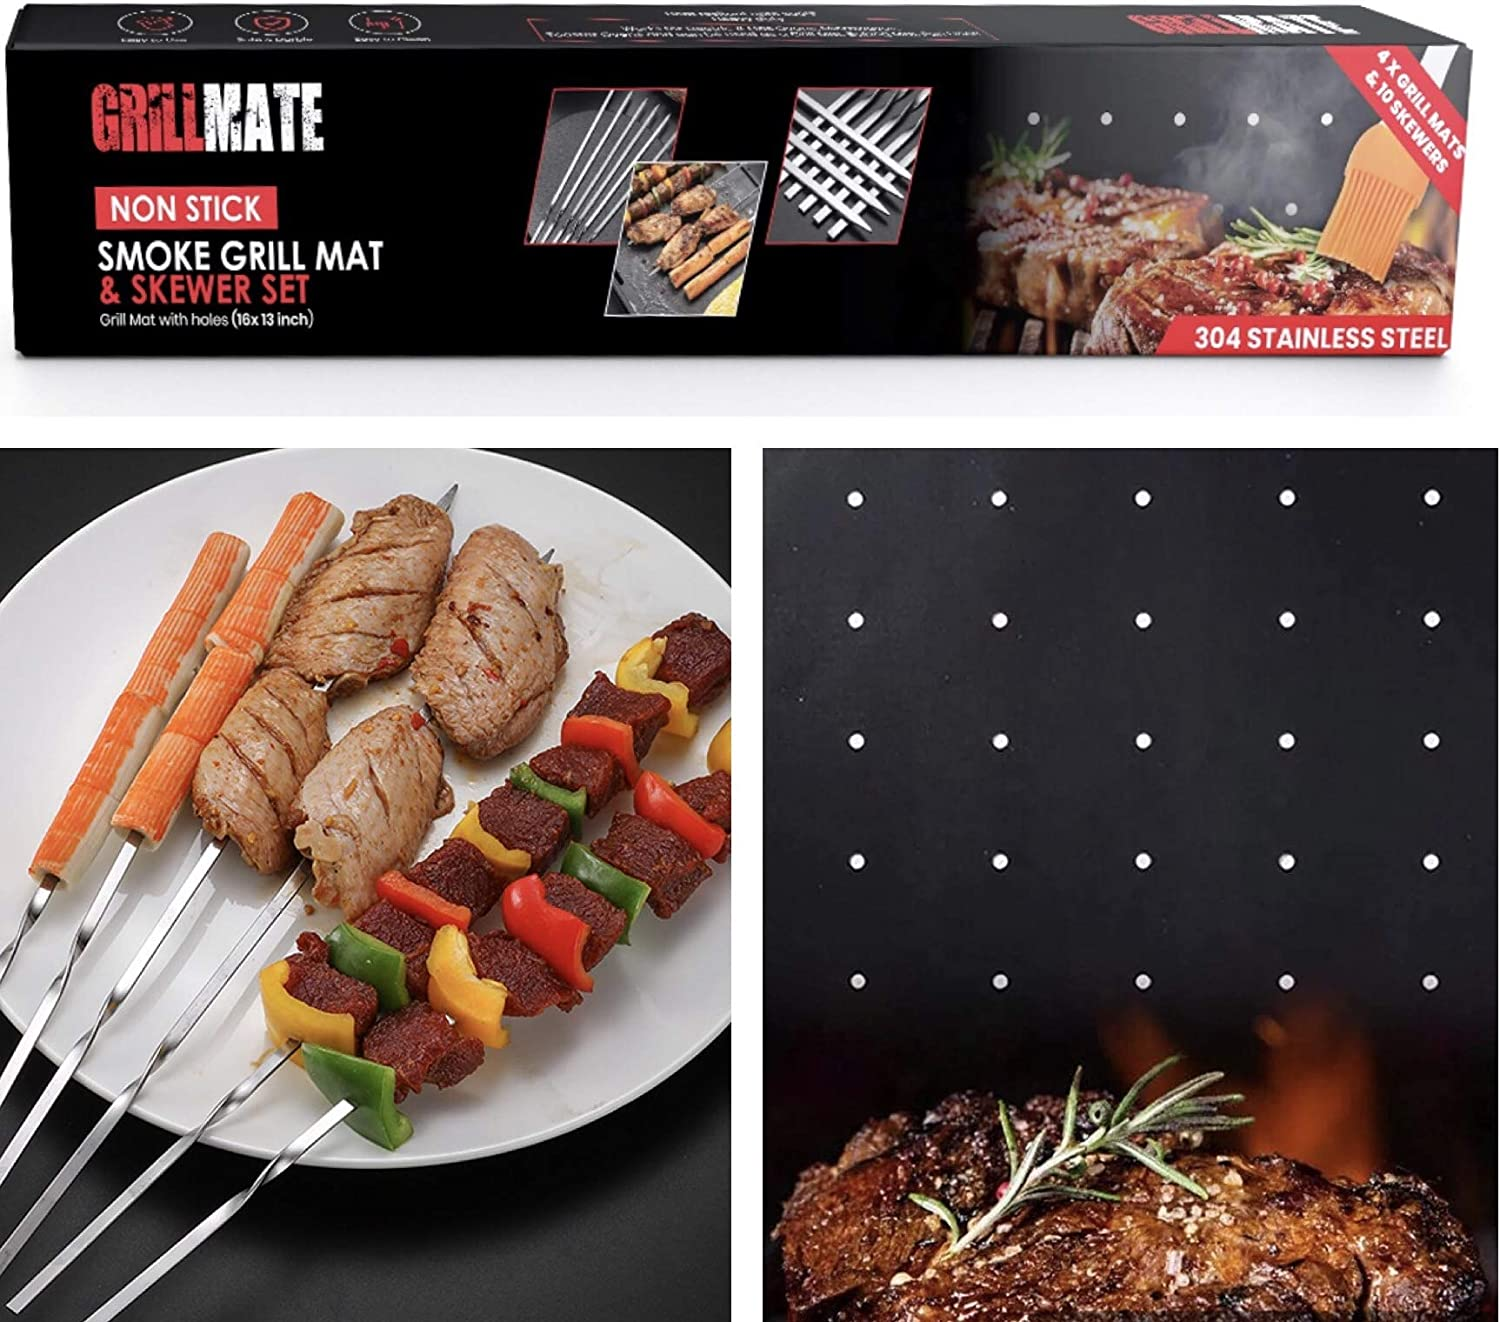 Grillmate Grill Mat – 4Pcs Grill Mats for Outdoor Grill with 10 Metal Skewers – PTFE Coated Fiberglass BBQ Grill Mats with Holes – Premium Food Grade Materials – Ideal for Gas, Charcoal, Electric